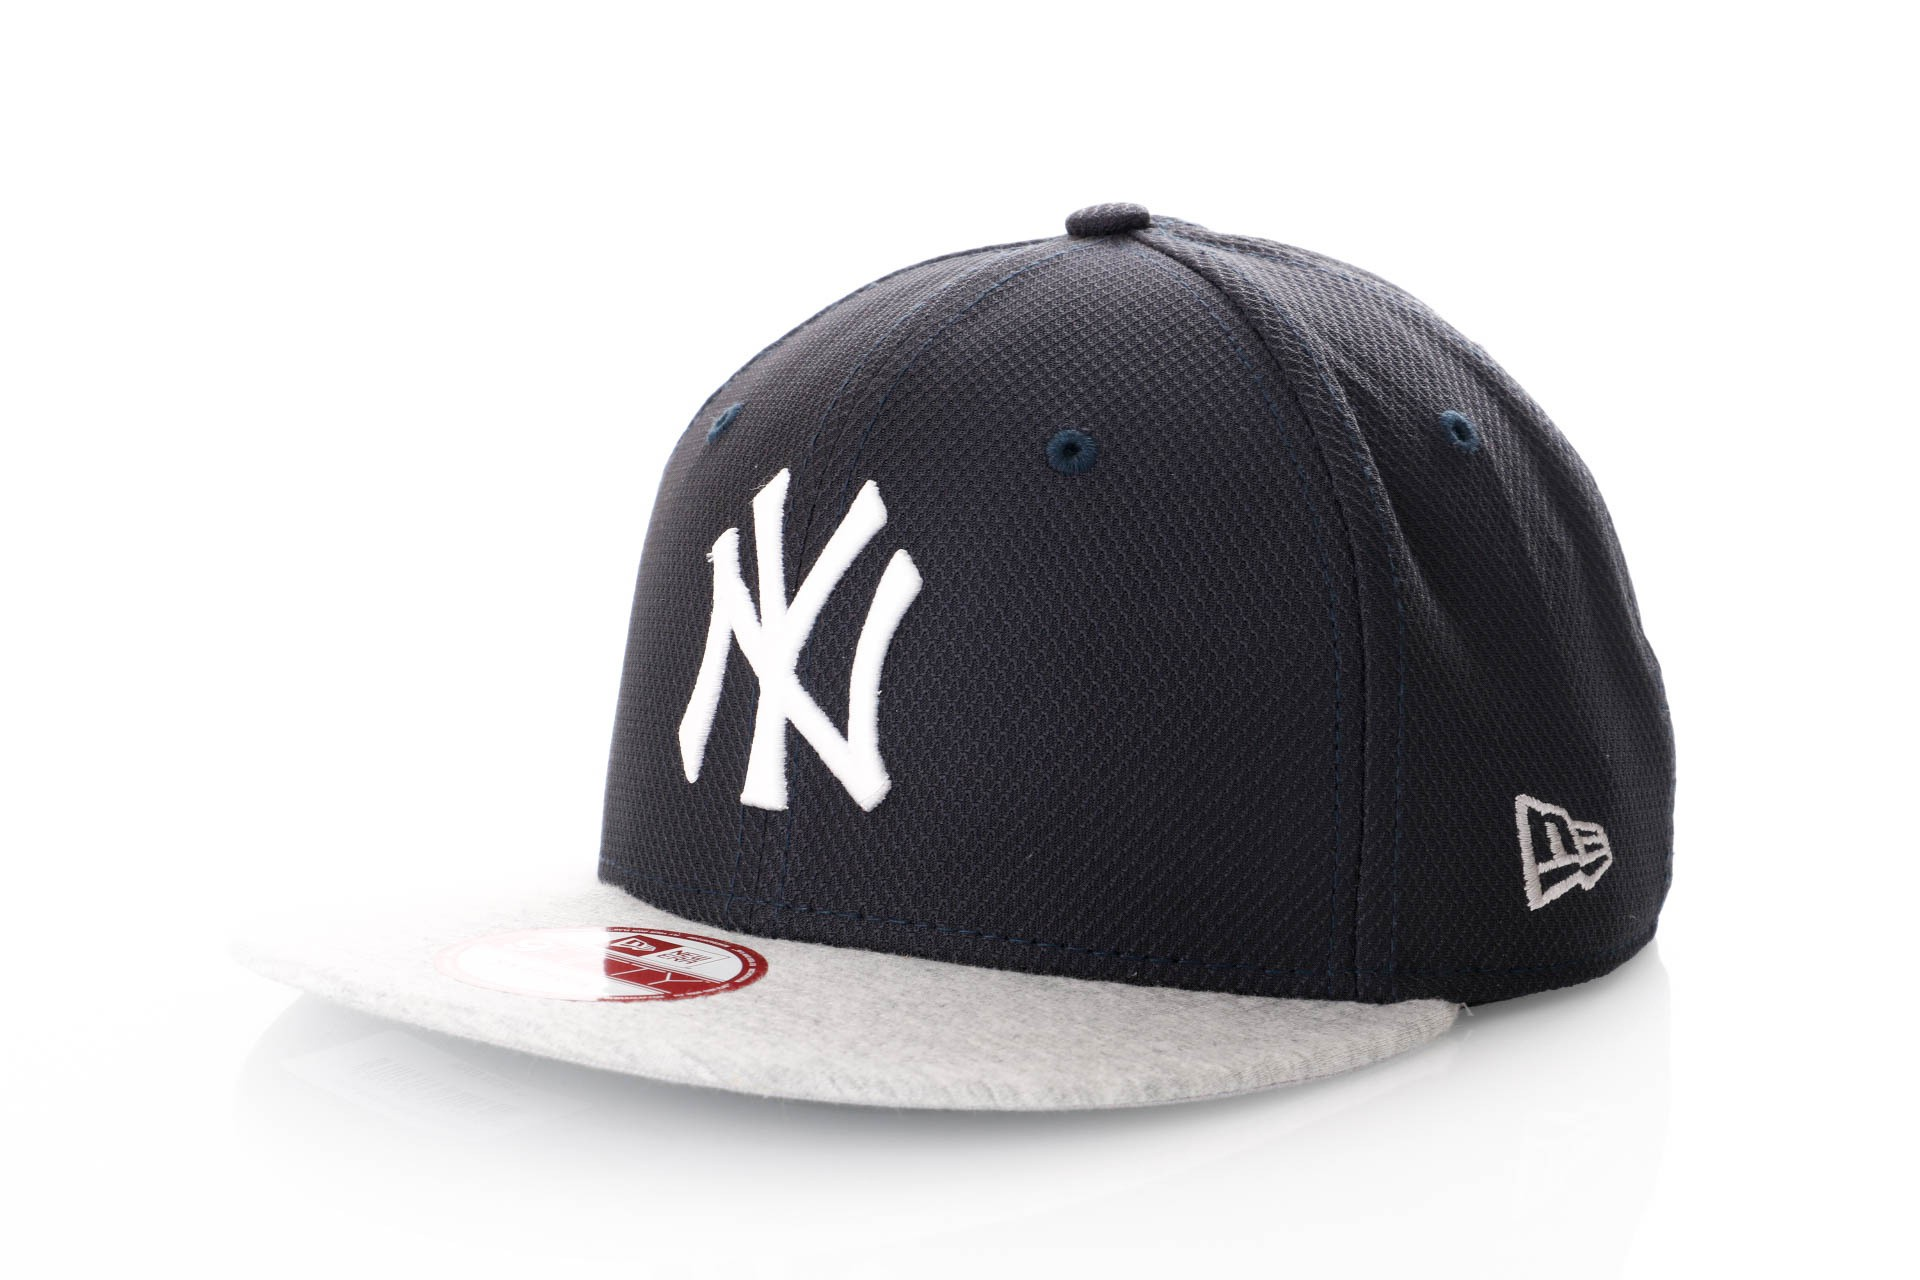 Foto van New Era Jersey Diamond Snapback Cap Black/Grey Ny